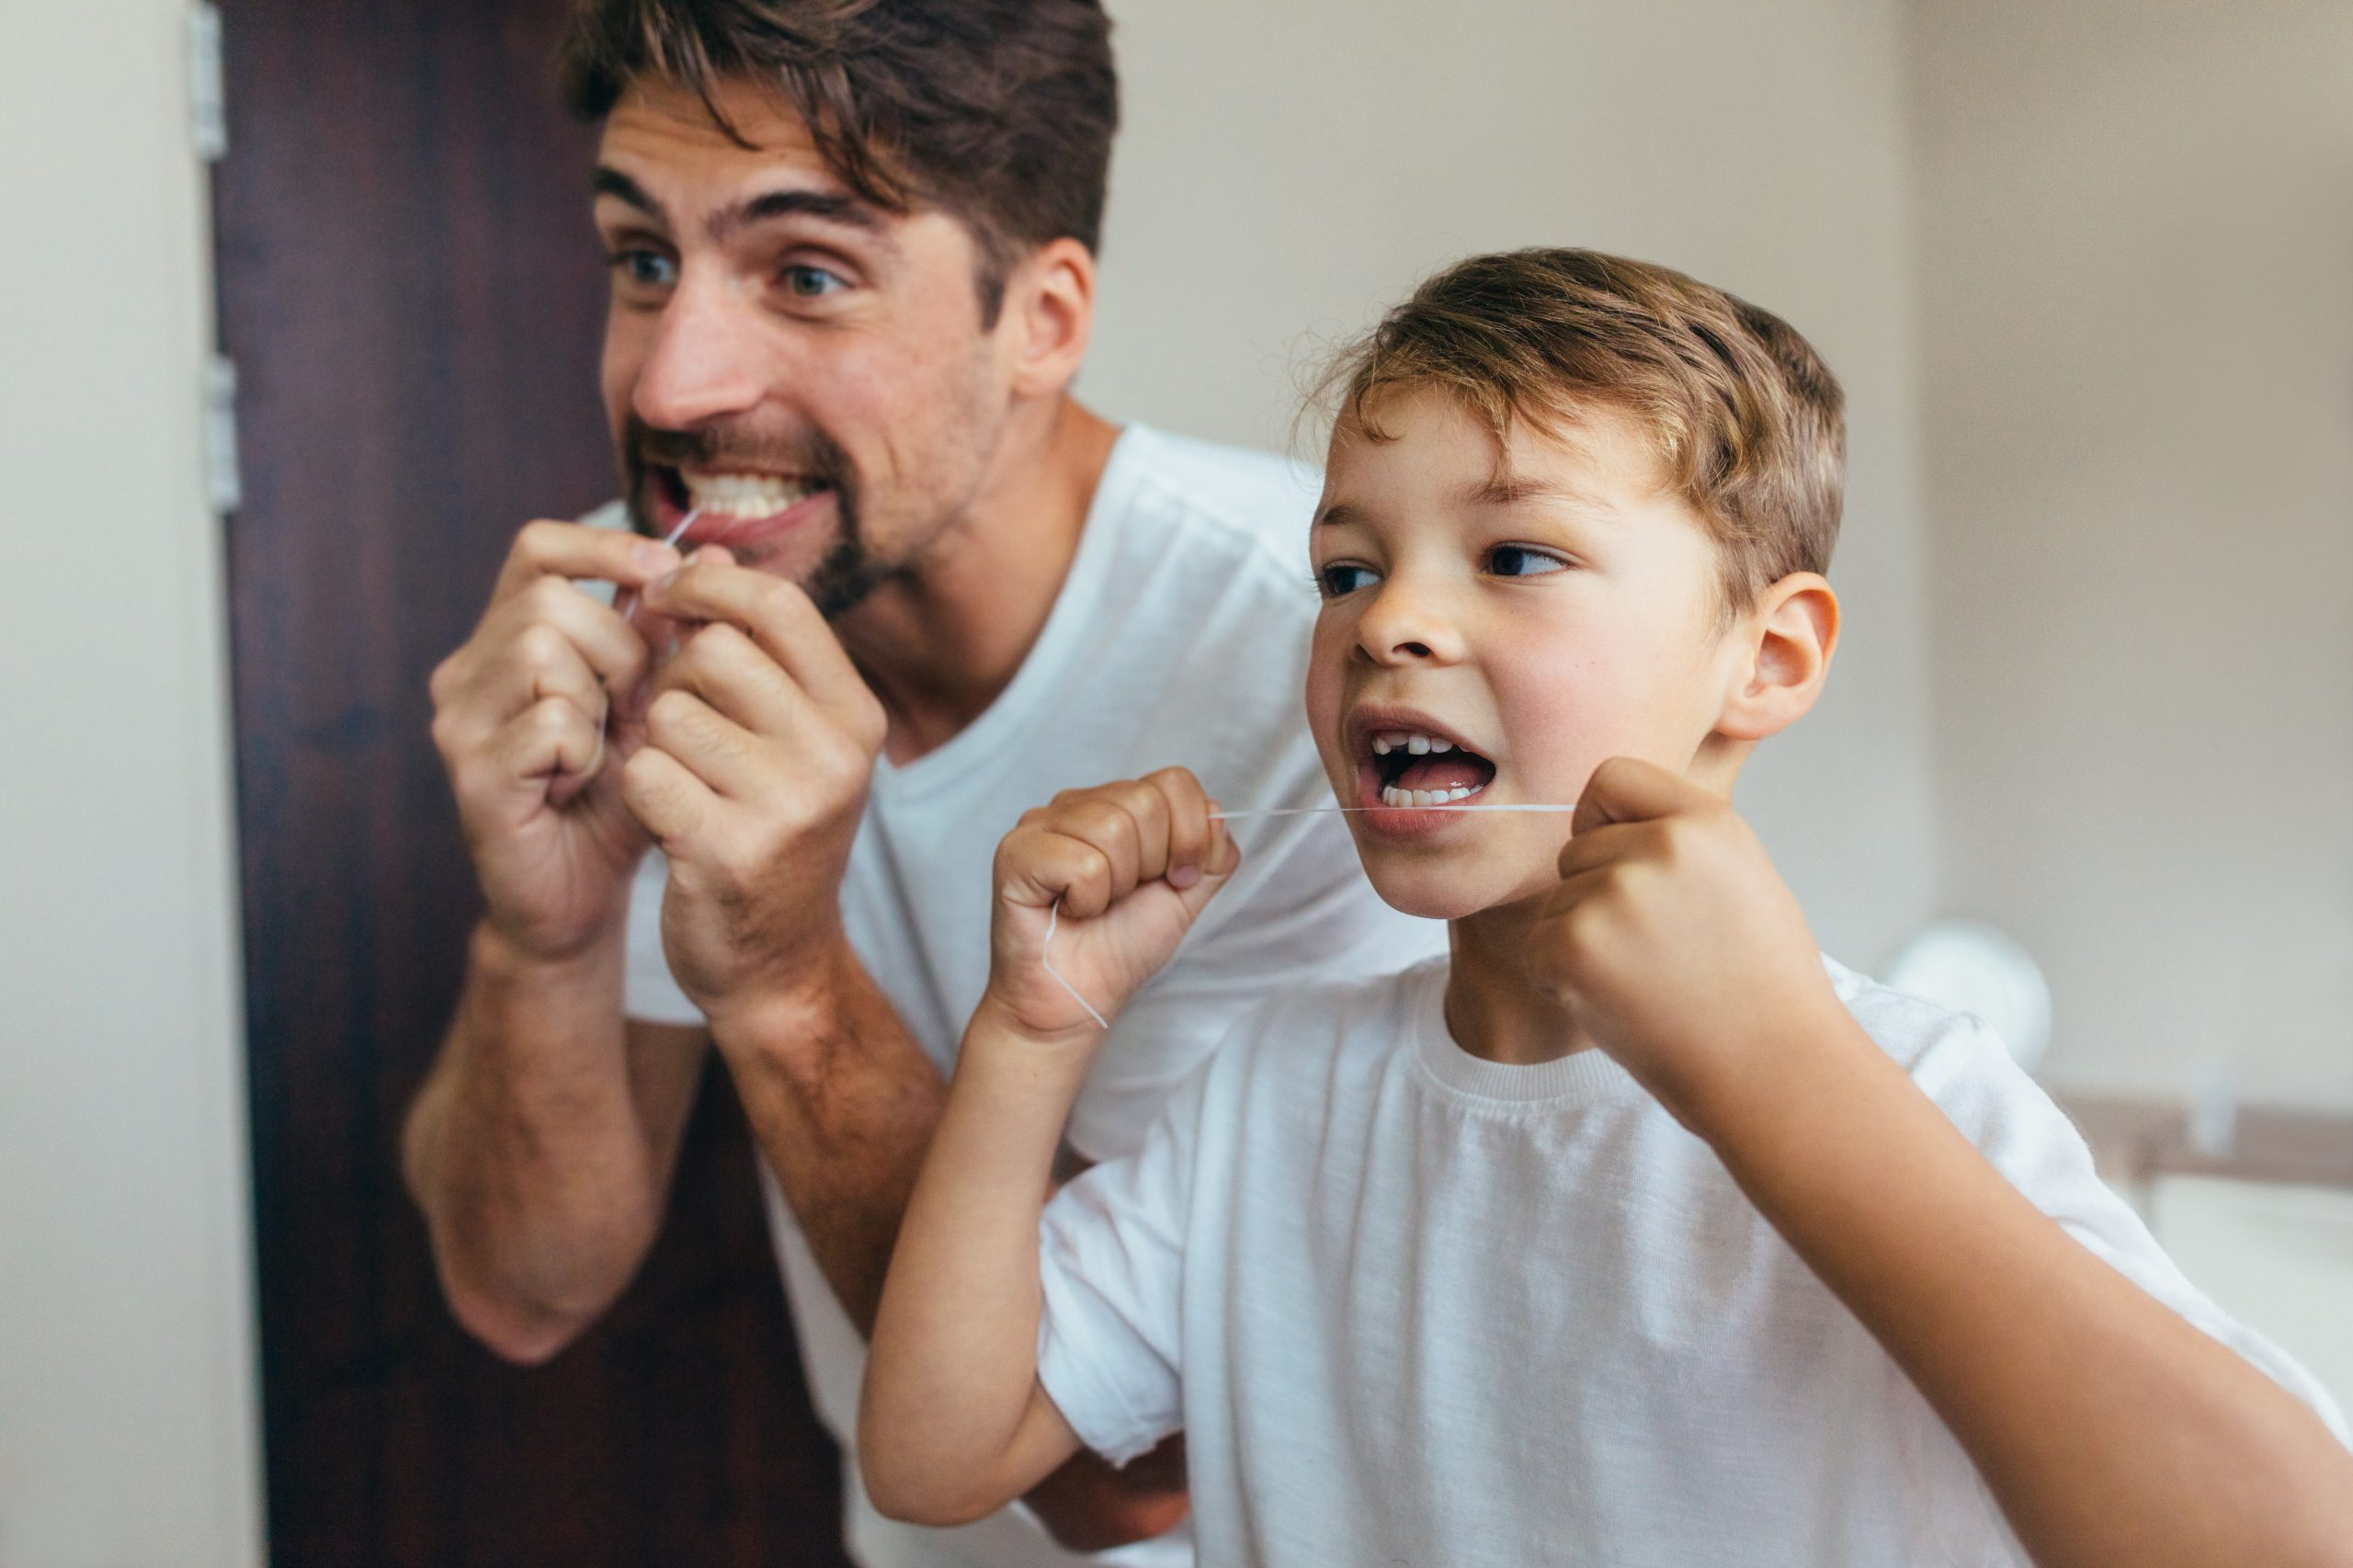 Sealants for Cavities at Mayfaire Family Dentistry